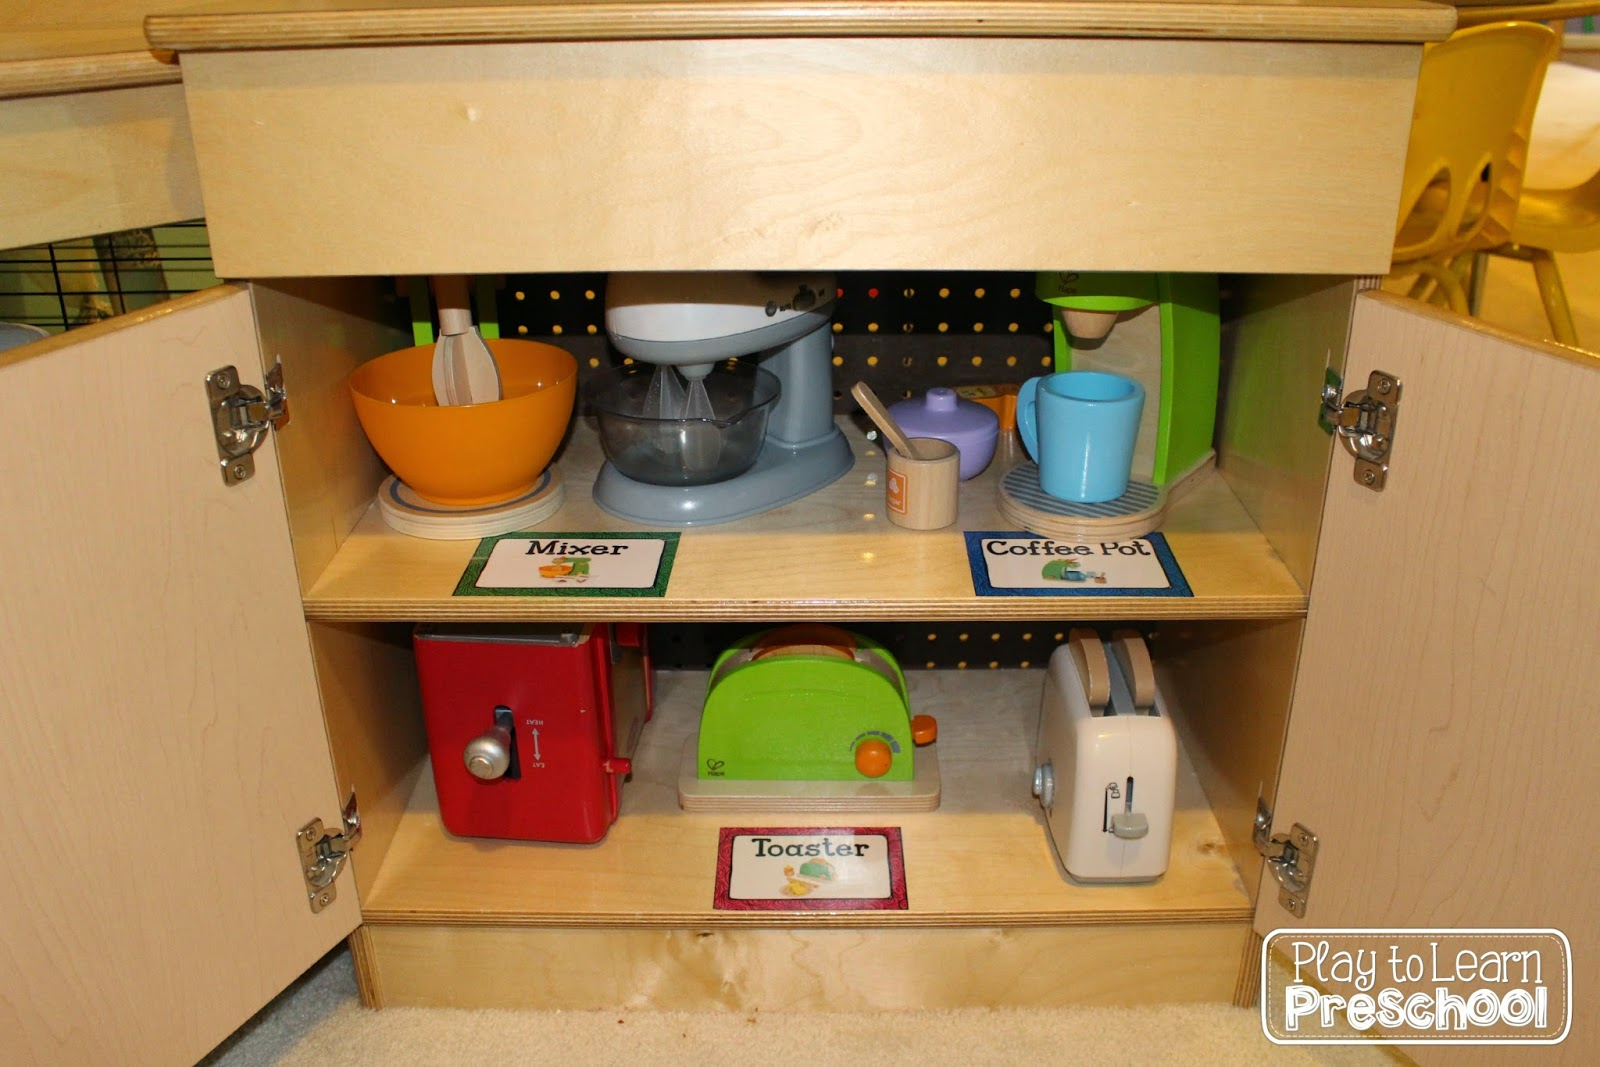 Play To Learn Preschool Kitchen Refresh